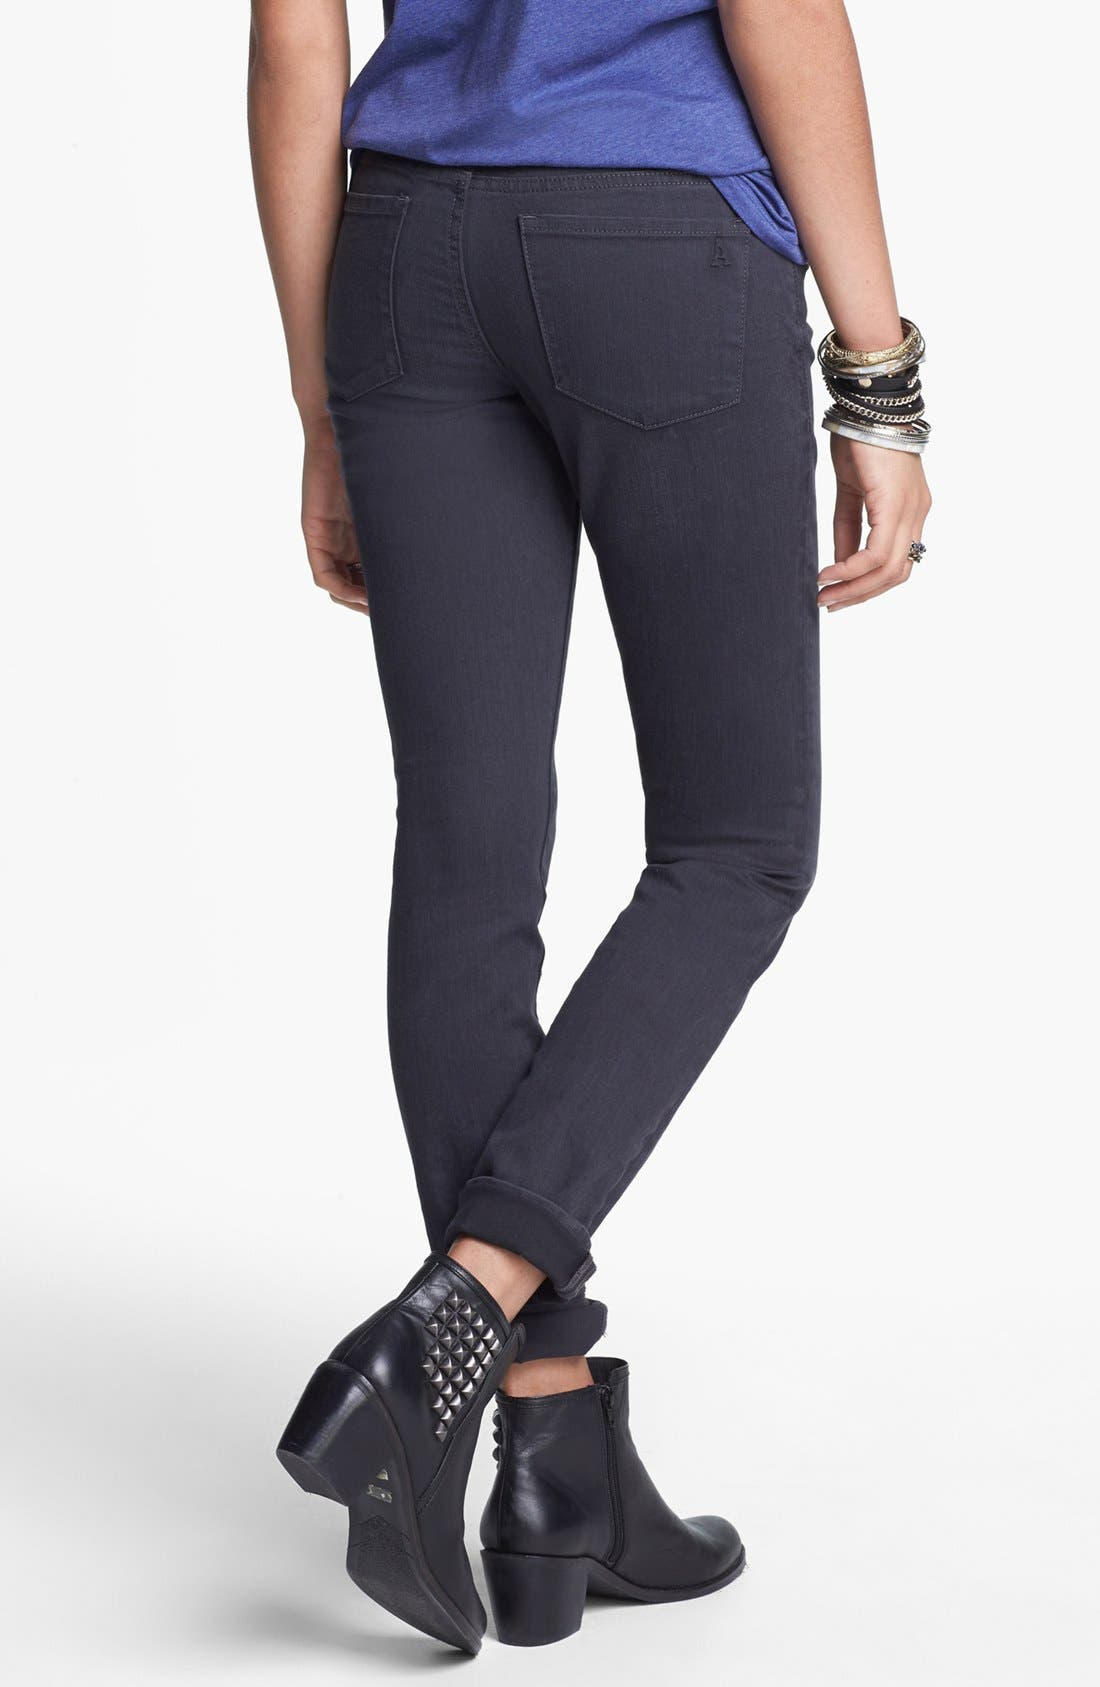 Alternate Image 2  - Articles of Society 'Mya' Stretch Skinny Jeans (Charcoal) (Juniors)